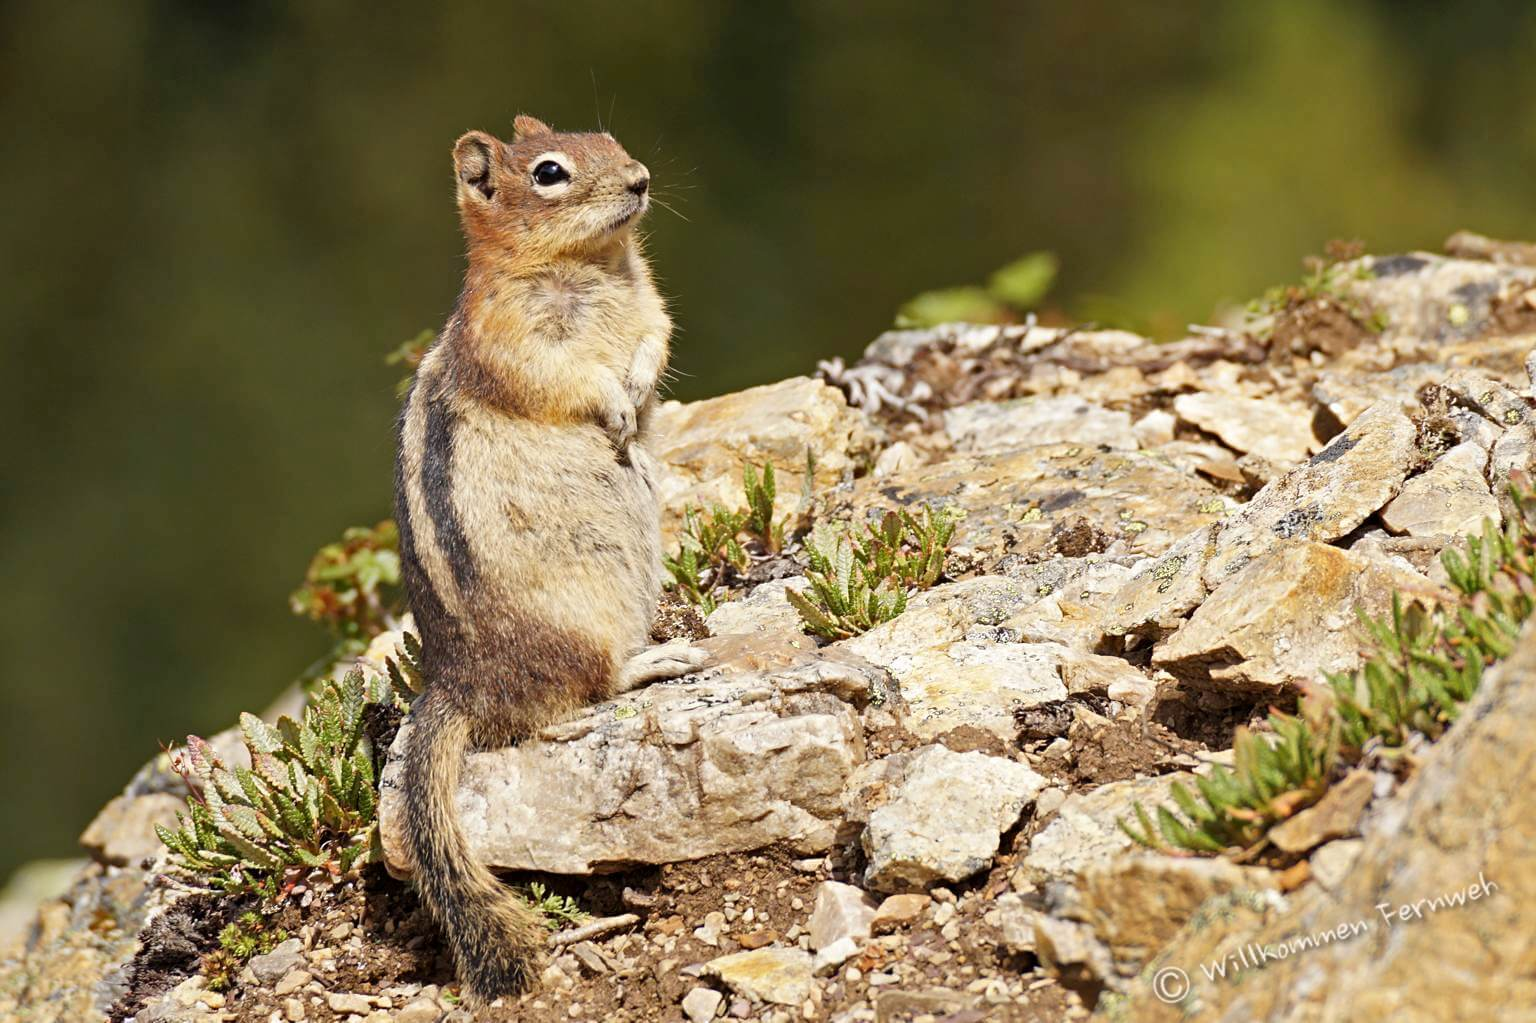 Goldmantelziesel (golden-mantled ground squirrel)